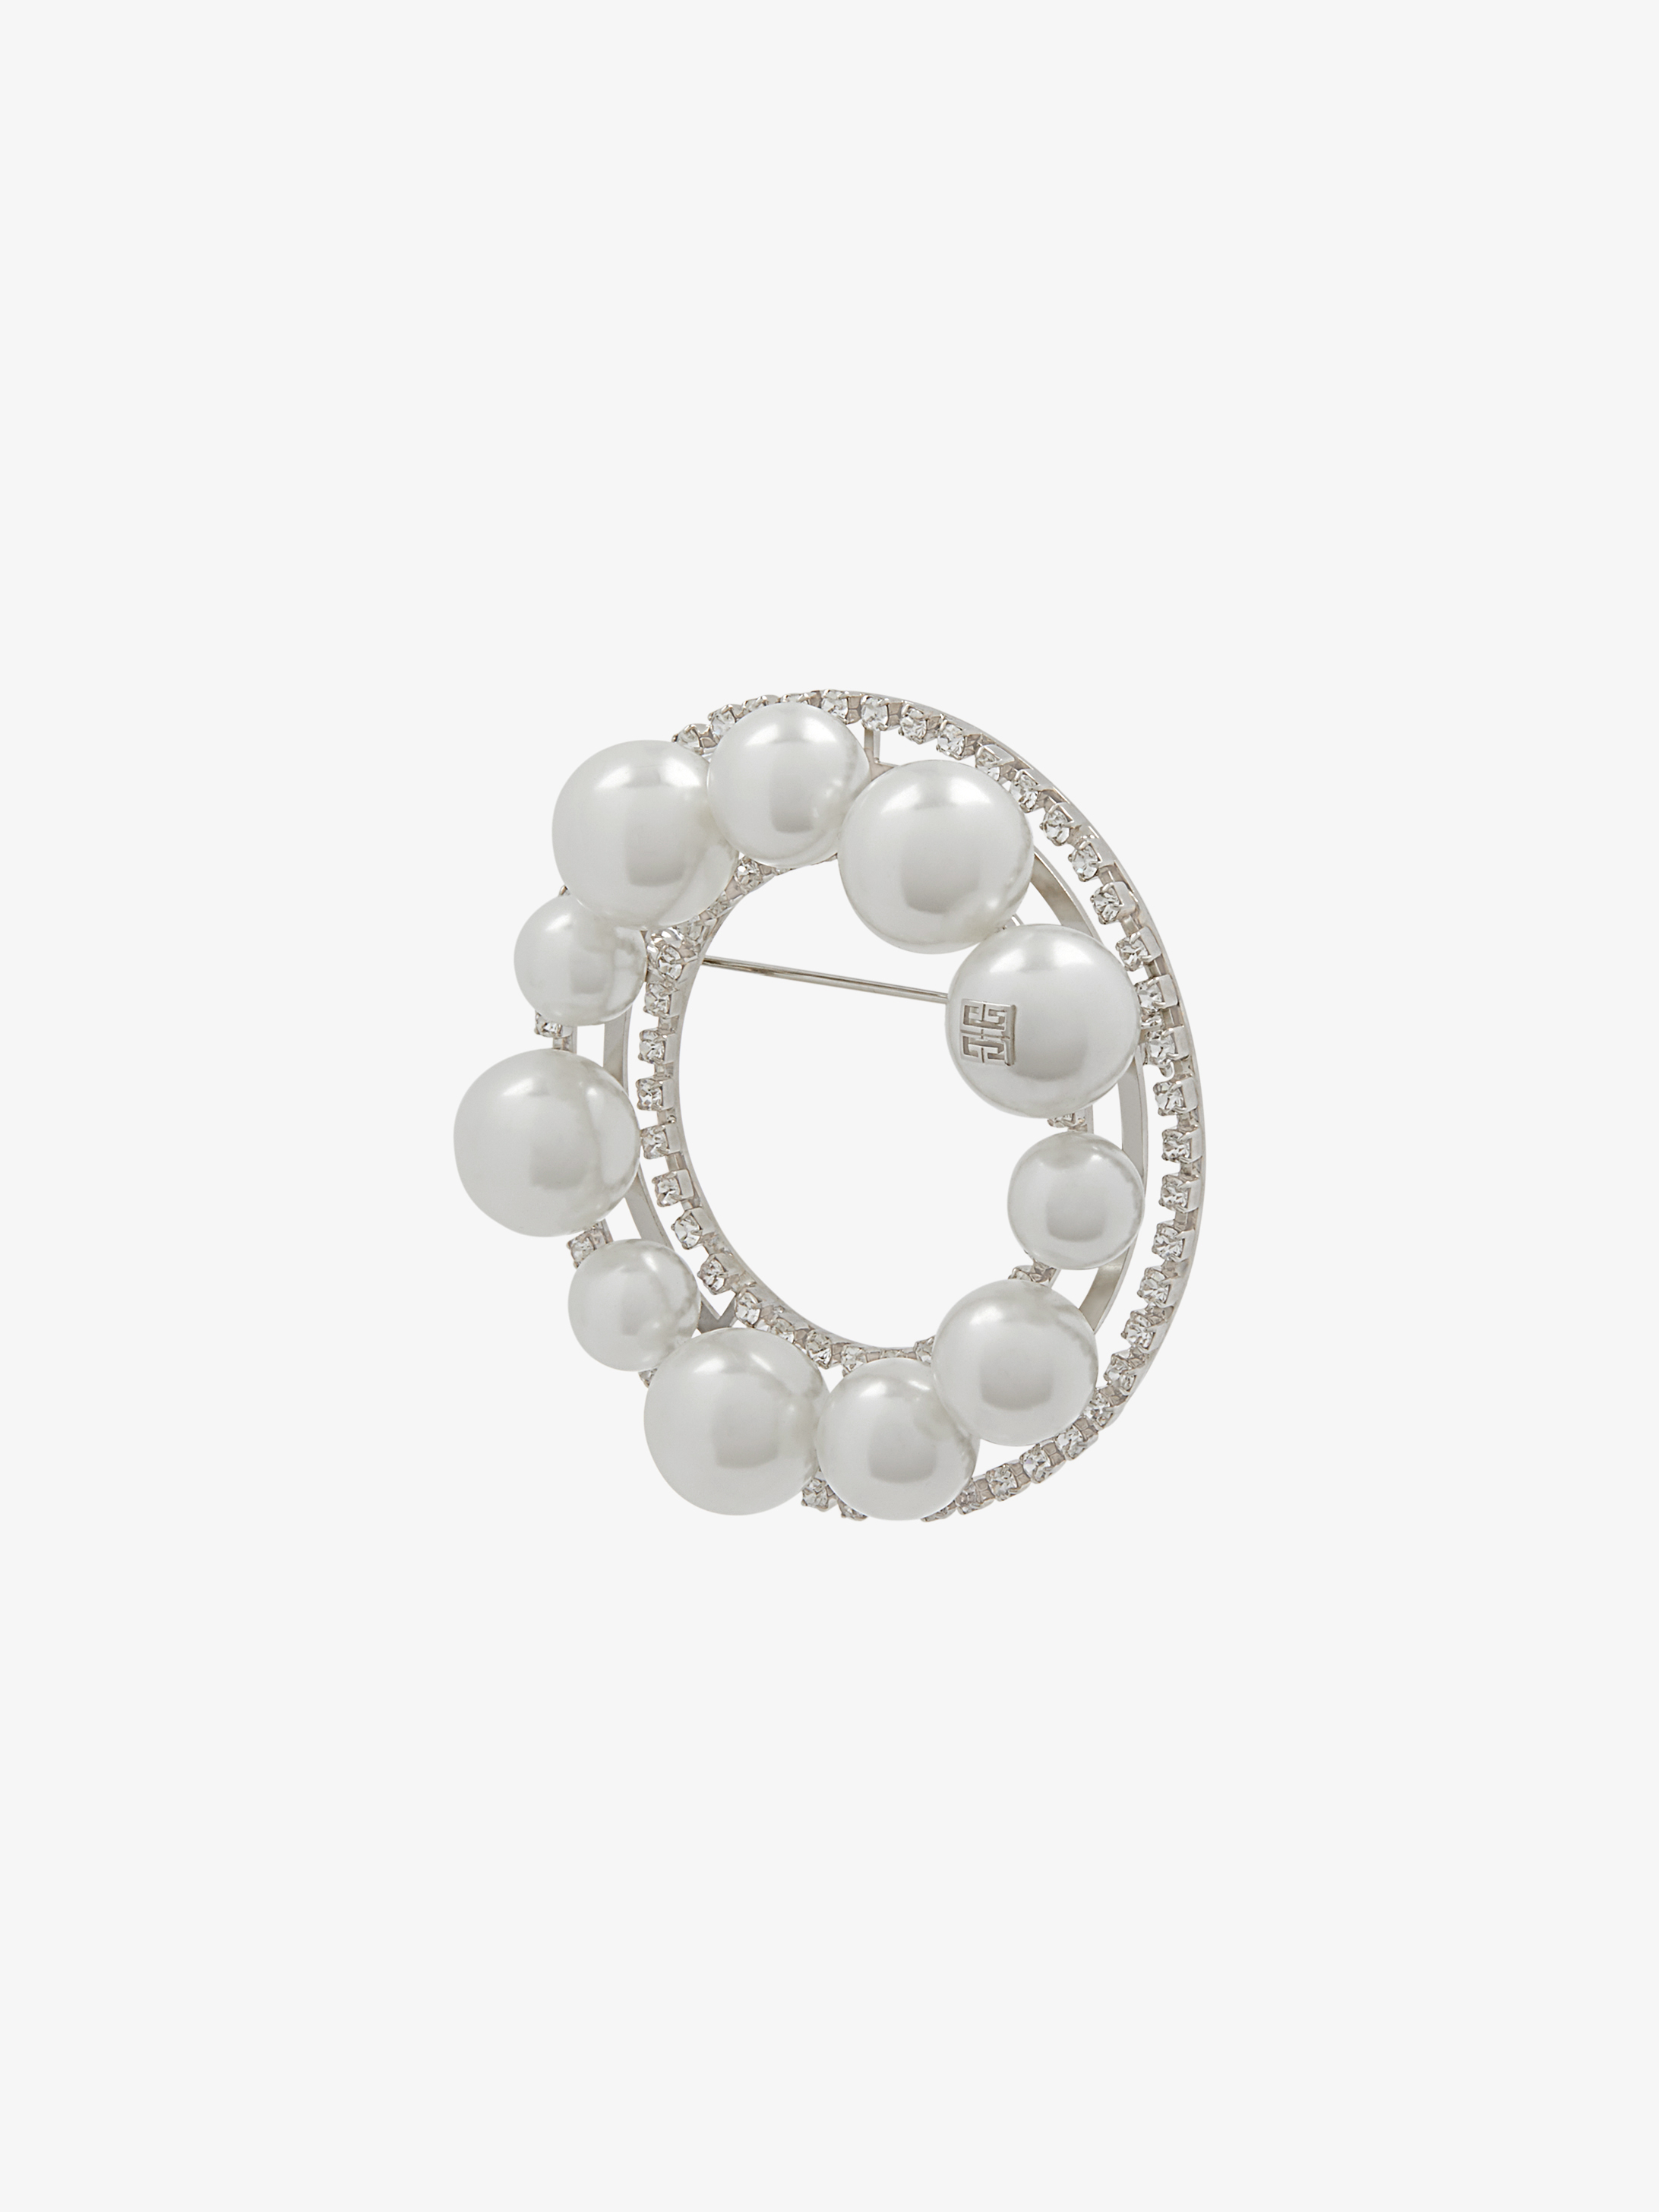 Ariana brooch in pearls and crystals